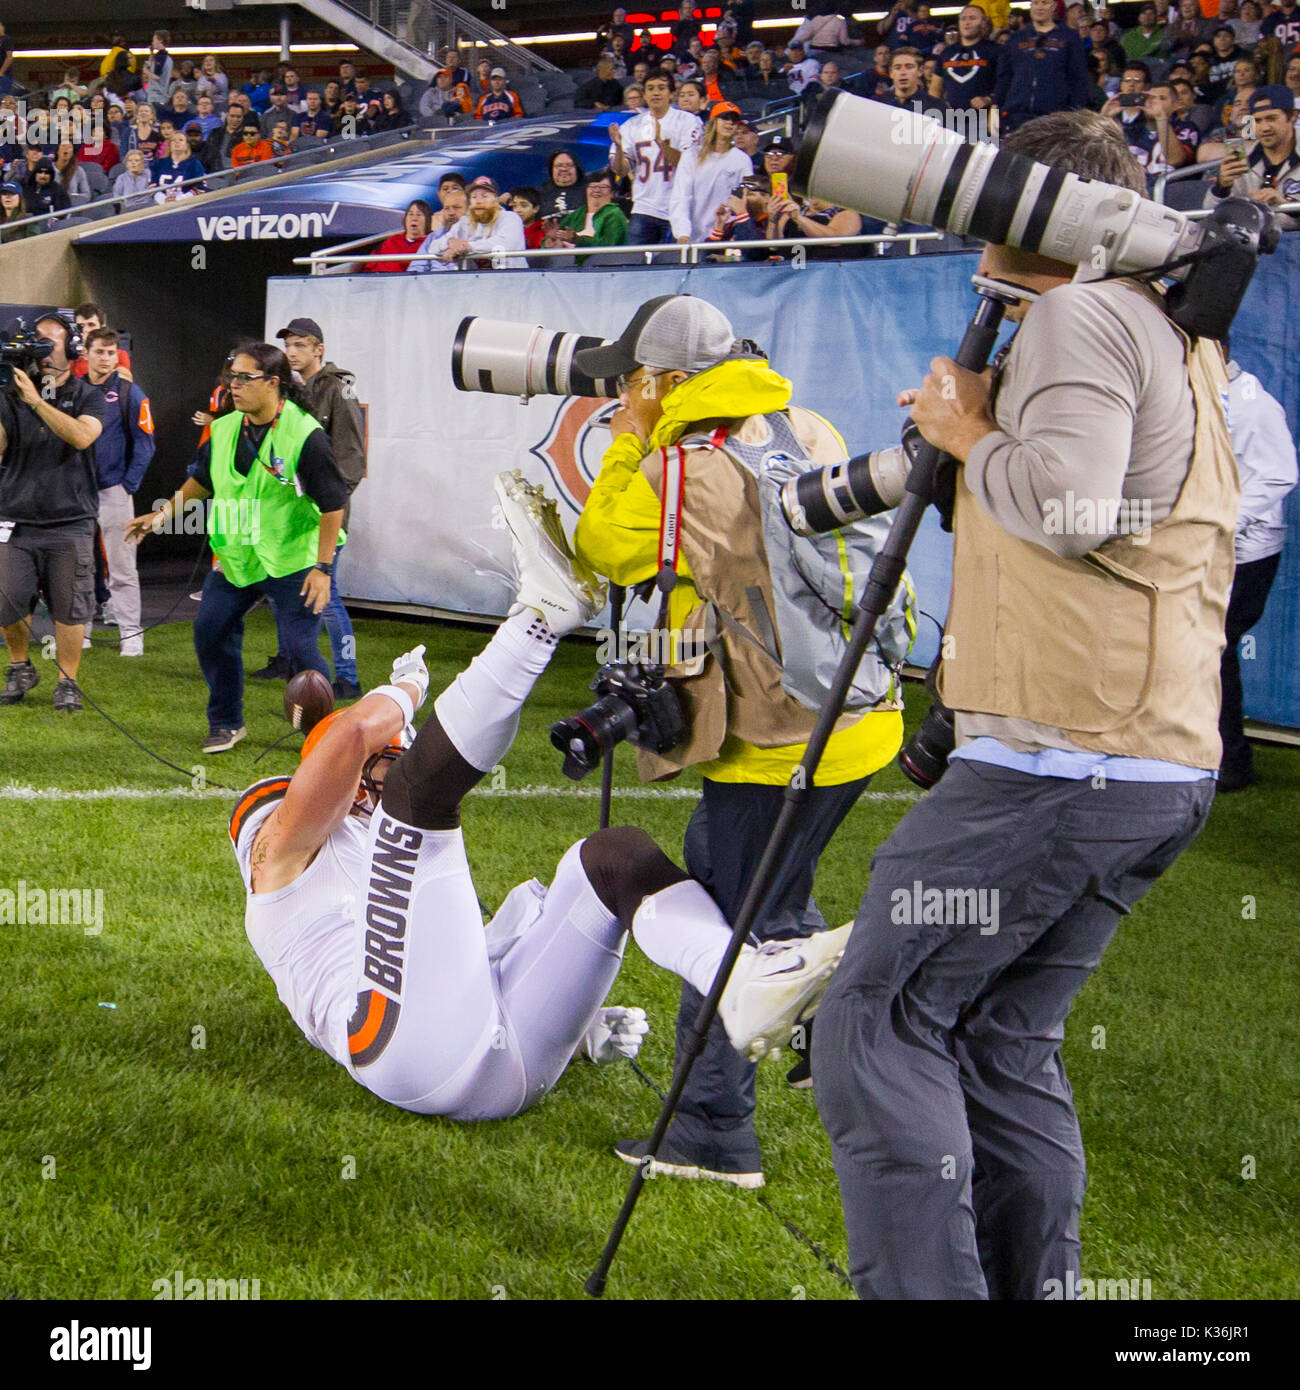 August 31, 2017: Chicago, Illinois, U.S. - Browns #87 Seth DeValve runs into Associated Press Photographer Nam Y. Huh during the NFL Preseason Game between the Cleveland Browns and Chicago Bears at Soldier Field in Chicago, IL. - Stock Image